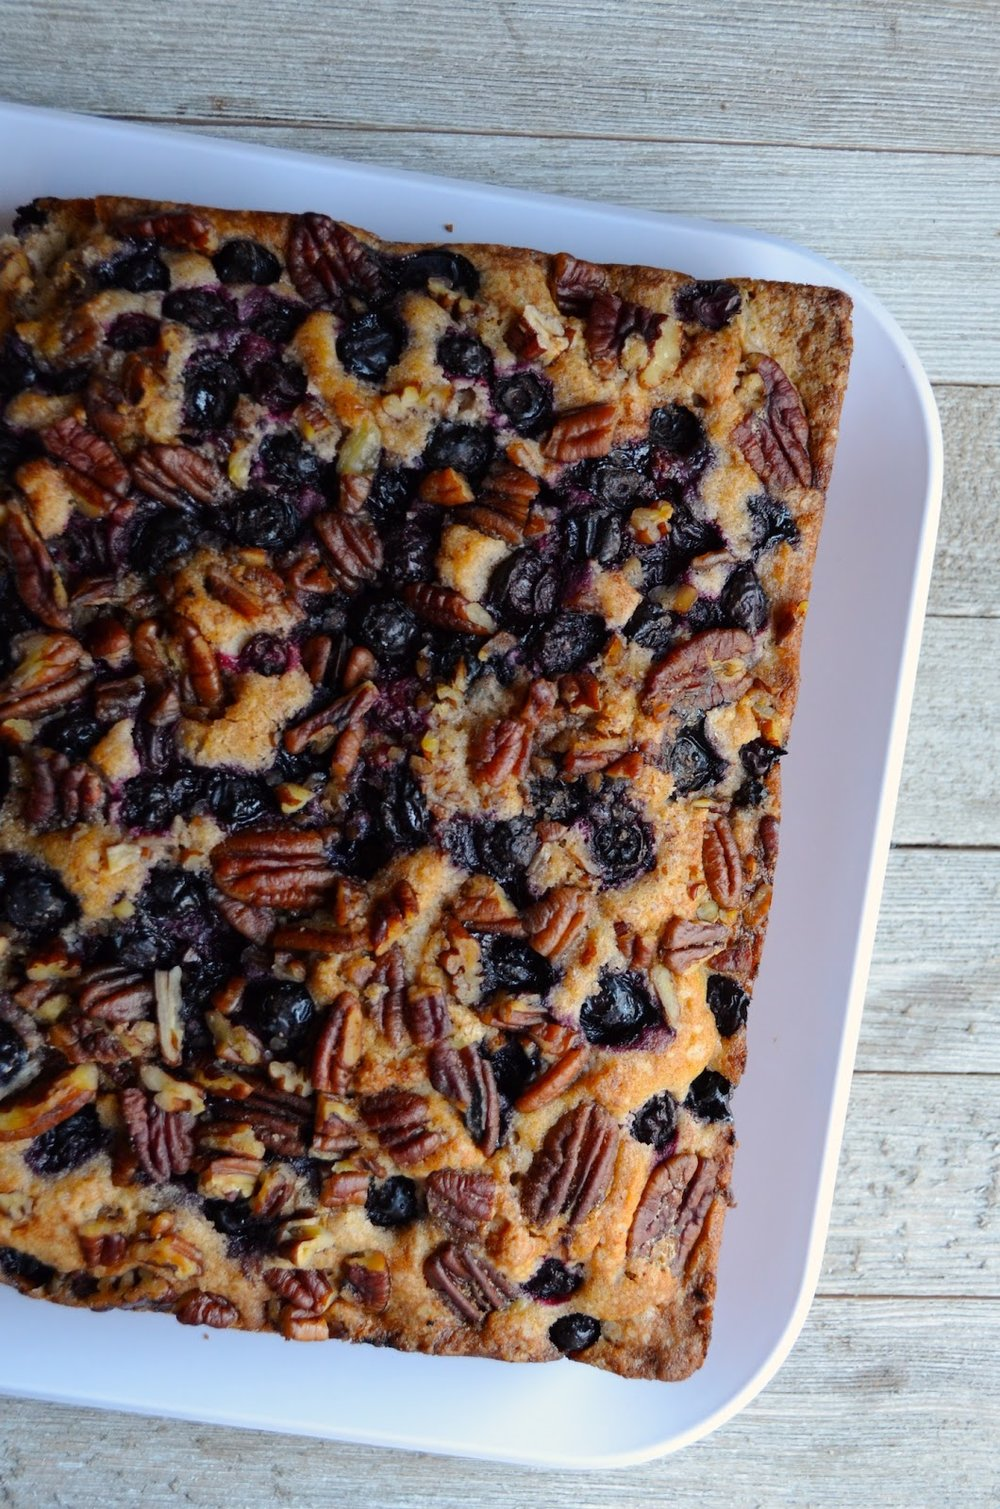 Cinnamon Blueberry Pecan Coffee Cake